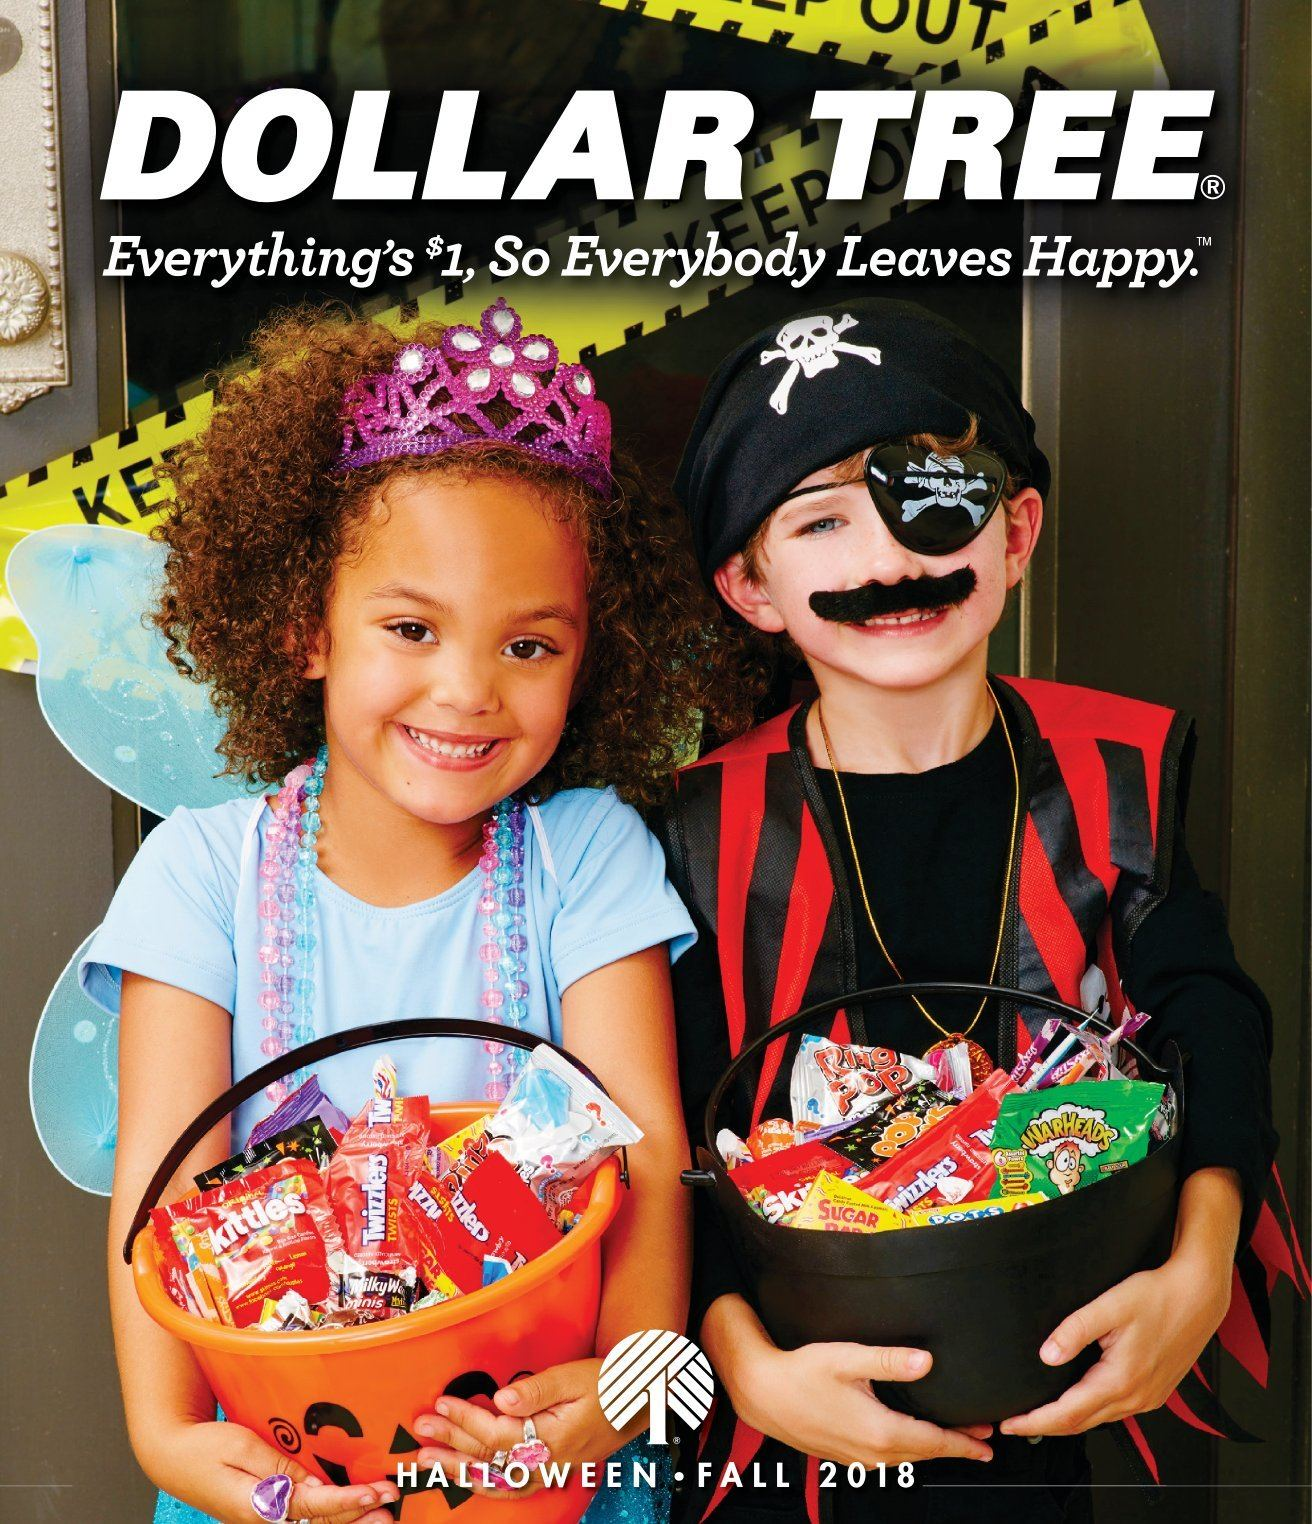 Dollar Tree Flyer - 09.01.2018 - 11.30.2018 - Sales products - sugar, tree. Page 1.